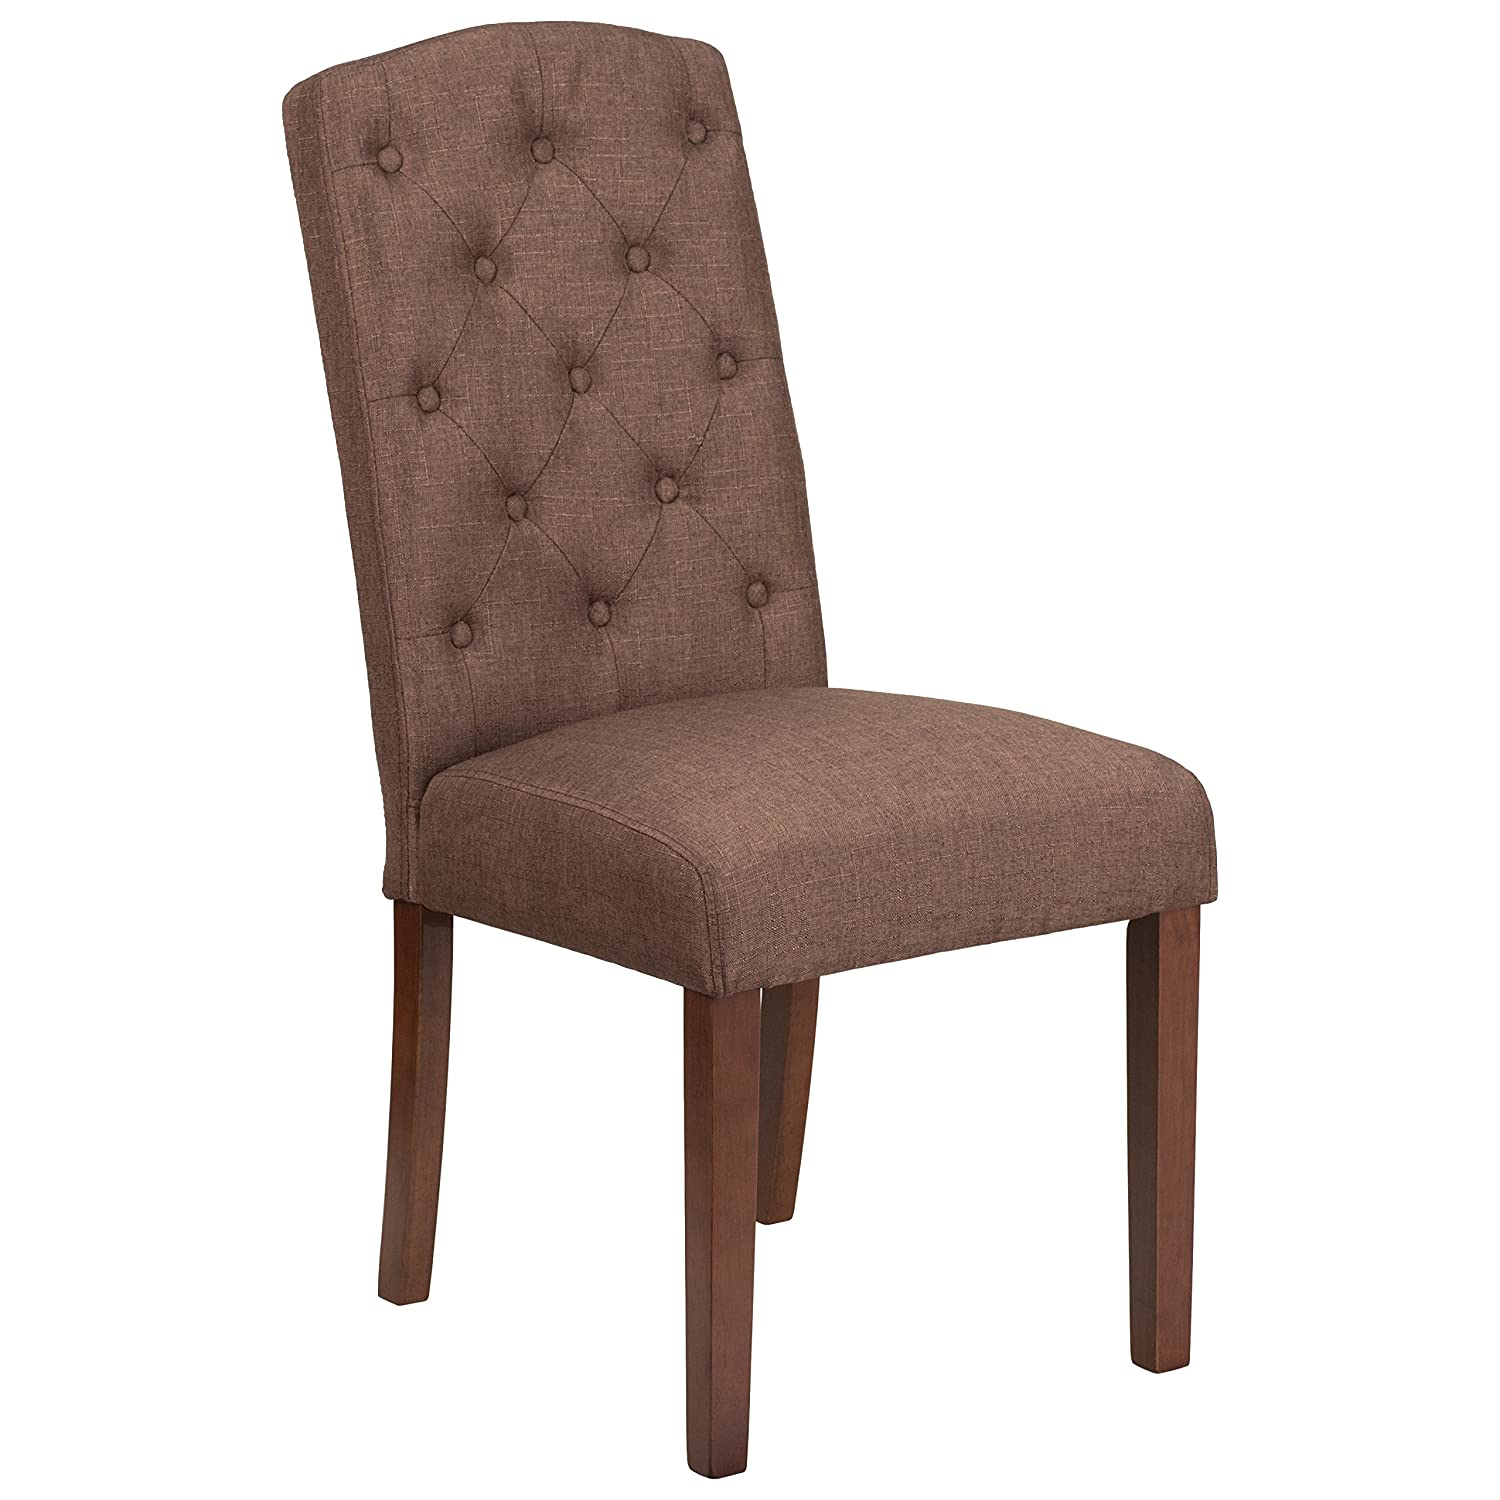 Amazon com flash furniture 2 pk hercules grove park series brown fabric tufted parsons chair kitchen dining